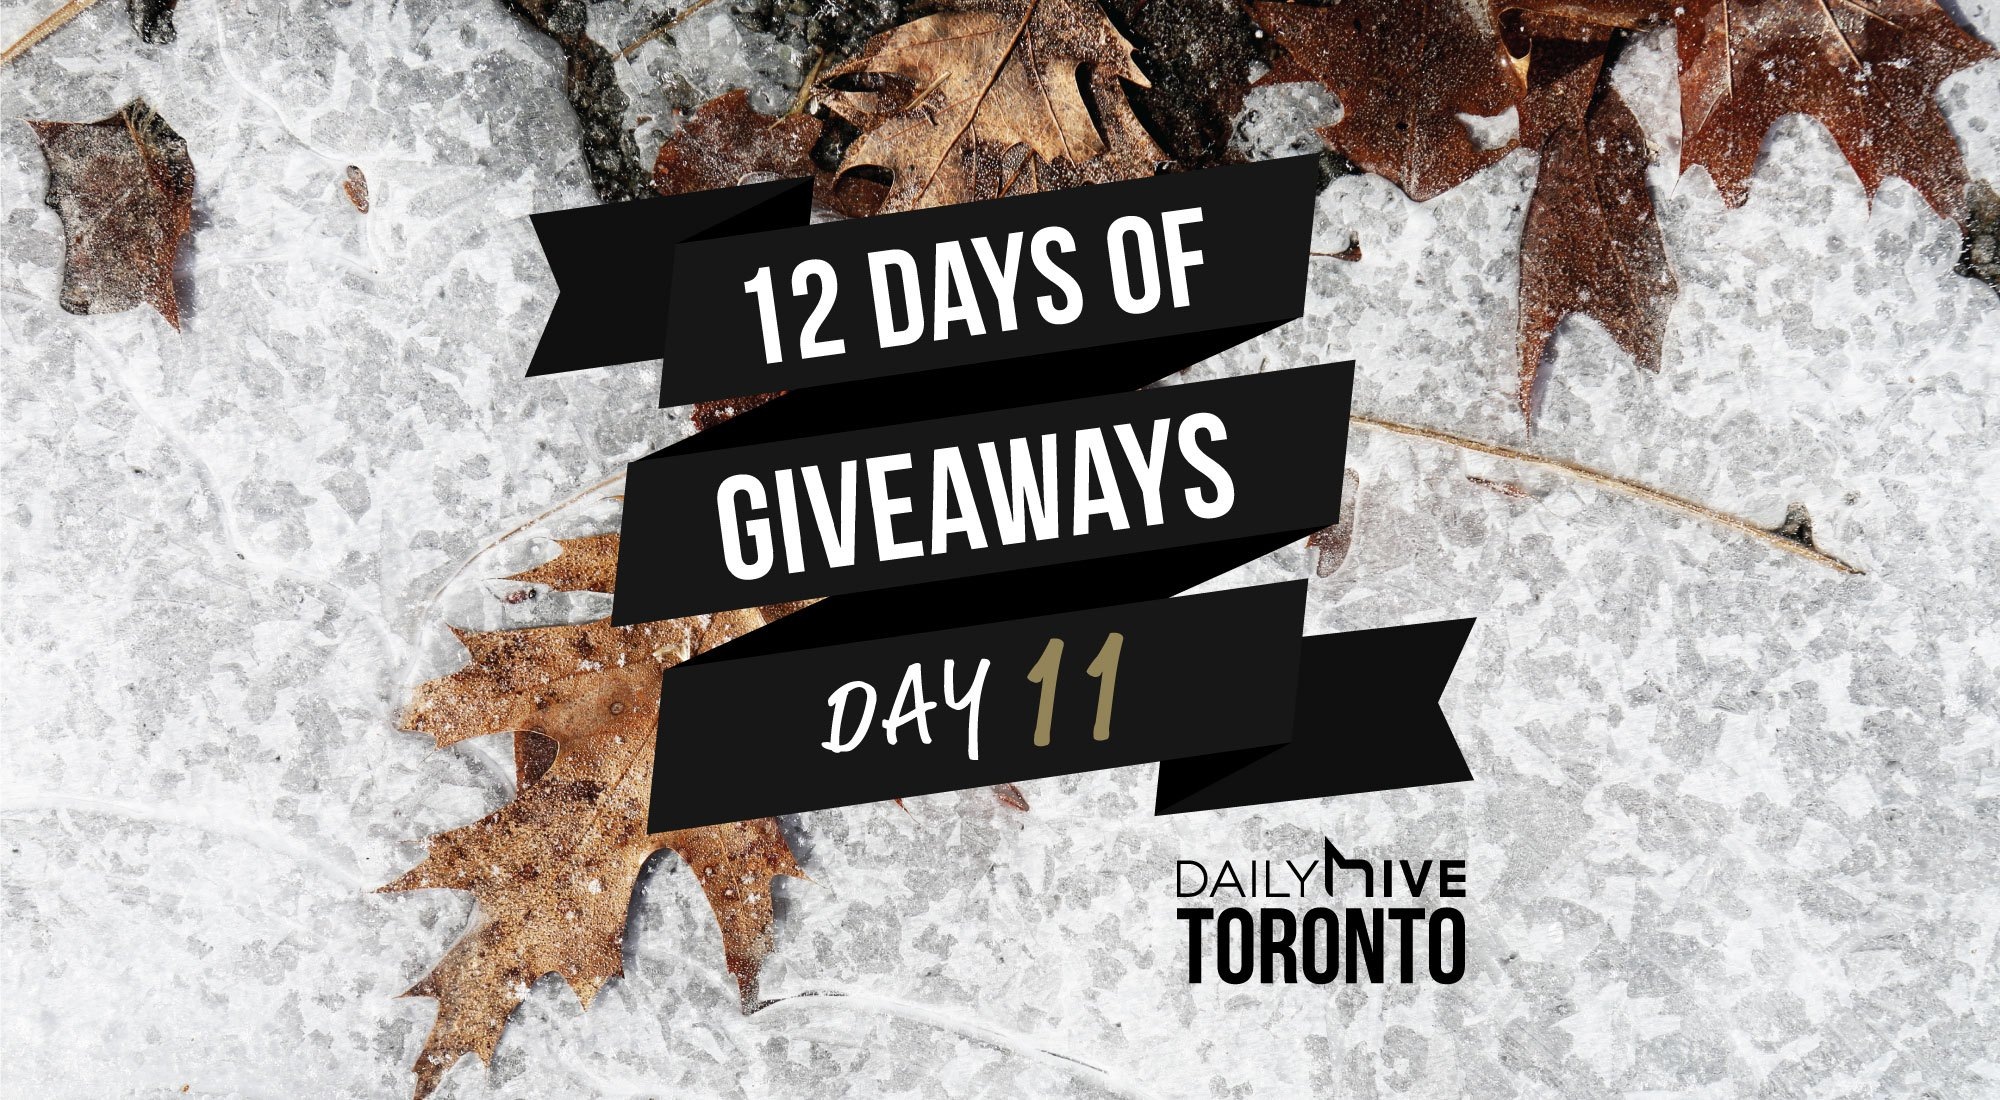 12 days of giveaways toronto 11